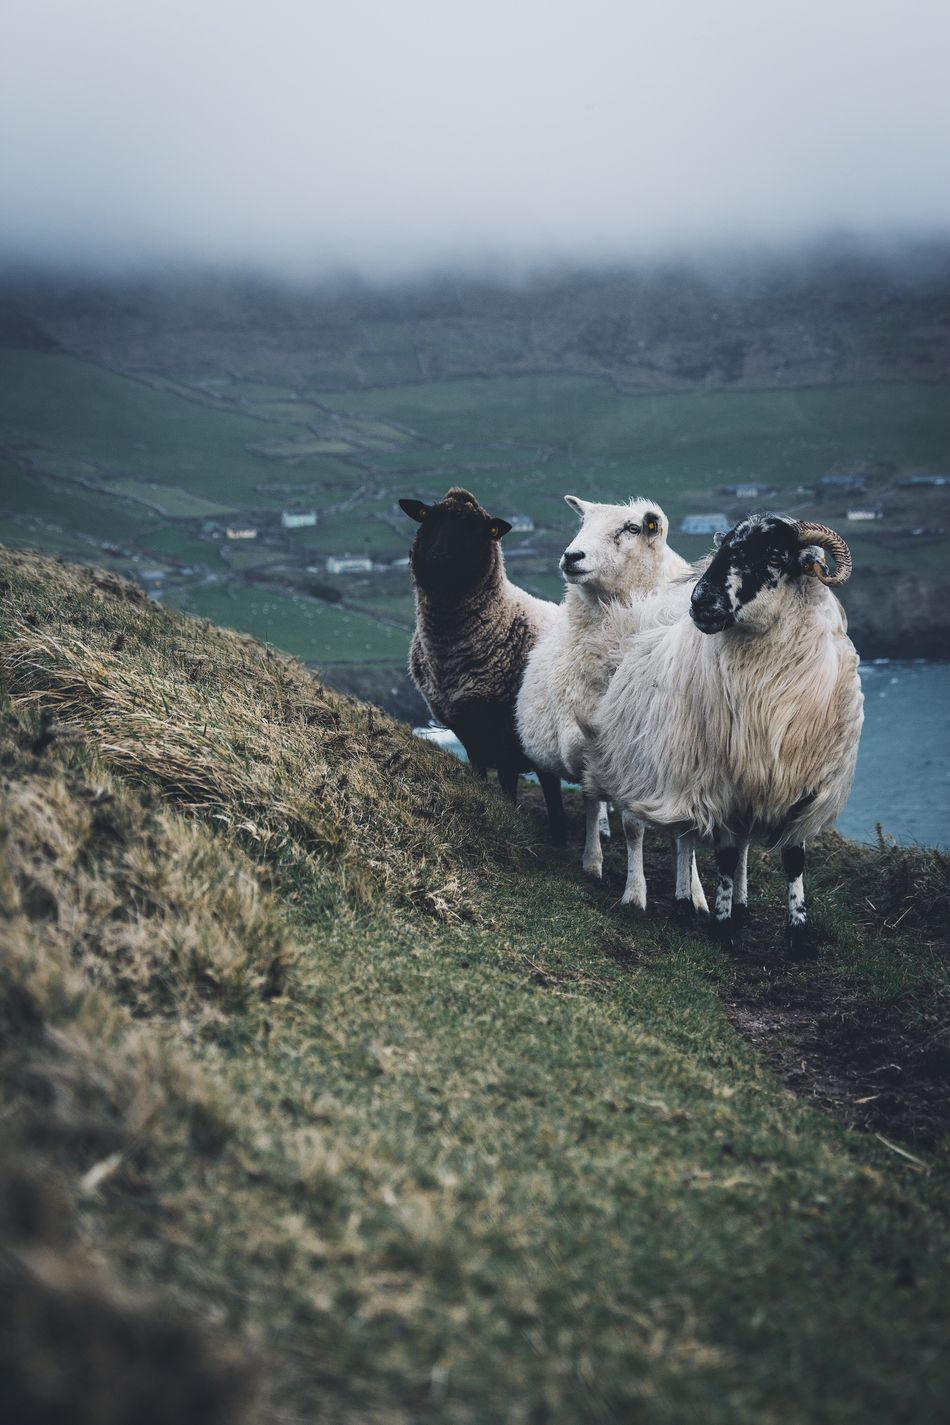 Irish squad. Animal Themes Livestock Mammal Domestic Animals Nature Water Beauty In Nature Field Sky No People Day Outdoors Landscape Grass Bird Sheep Mountain